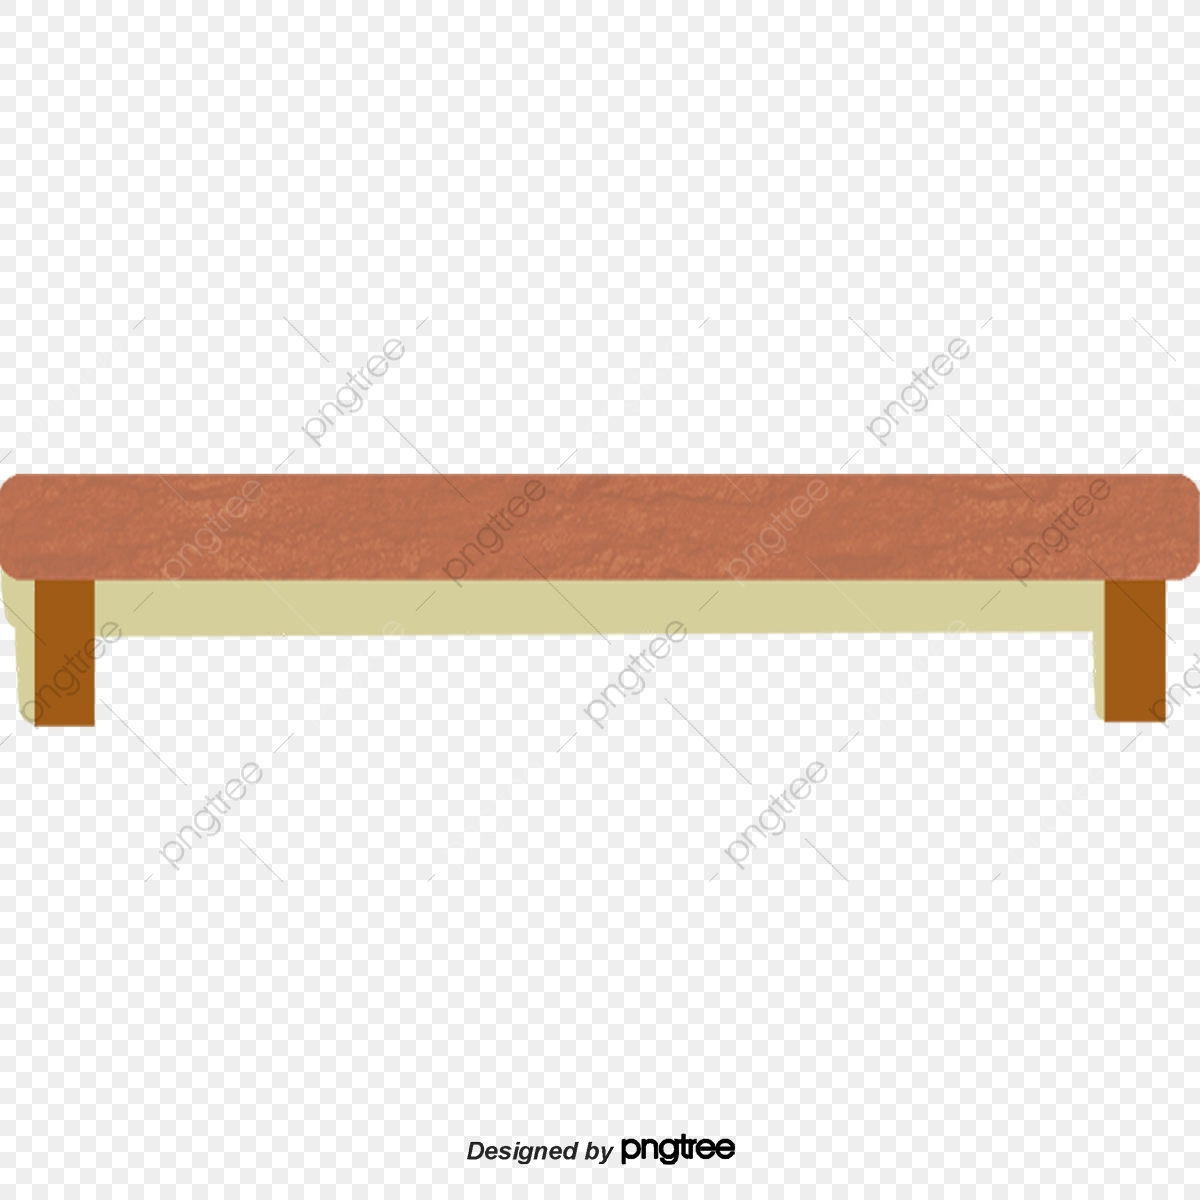 Cartoon Bench, Rest, Park, Stool PNG Transparent Clipart Image and.